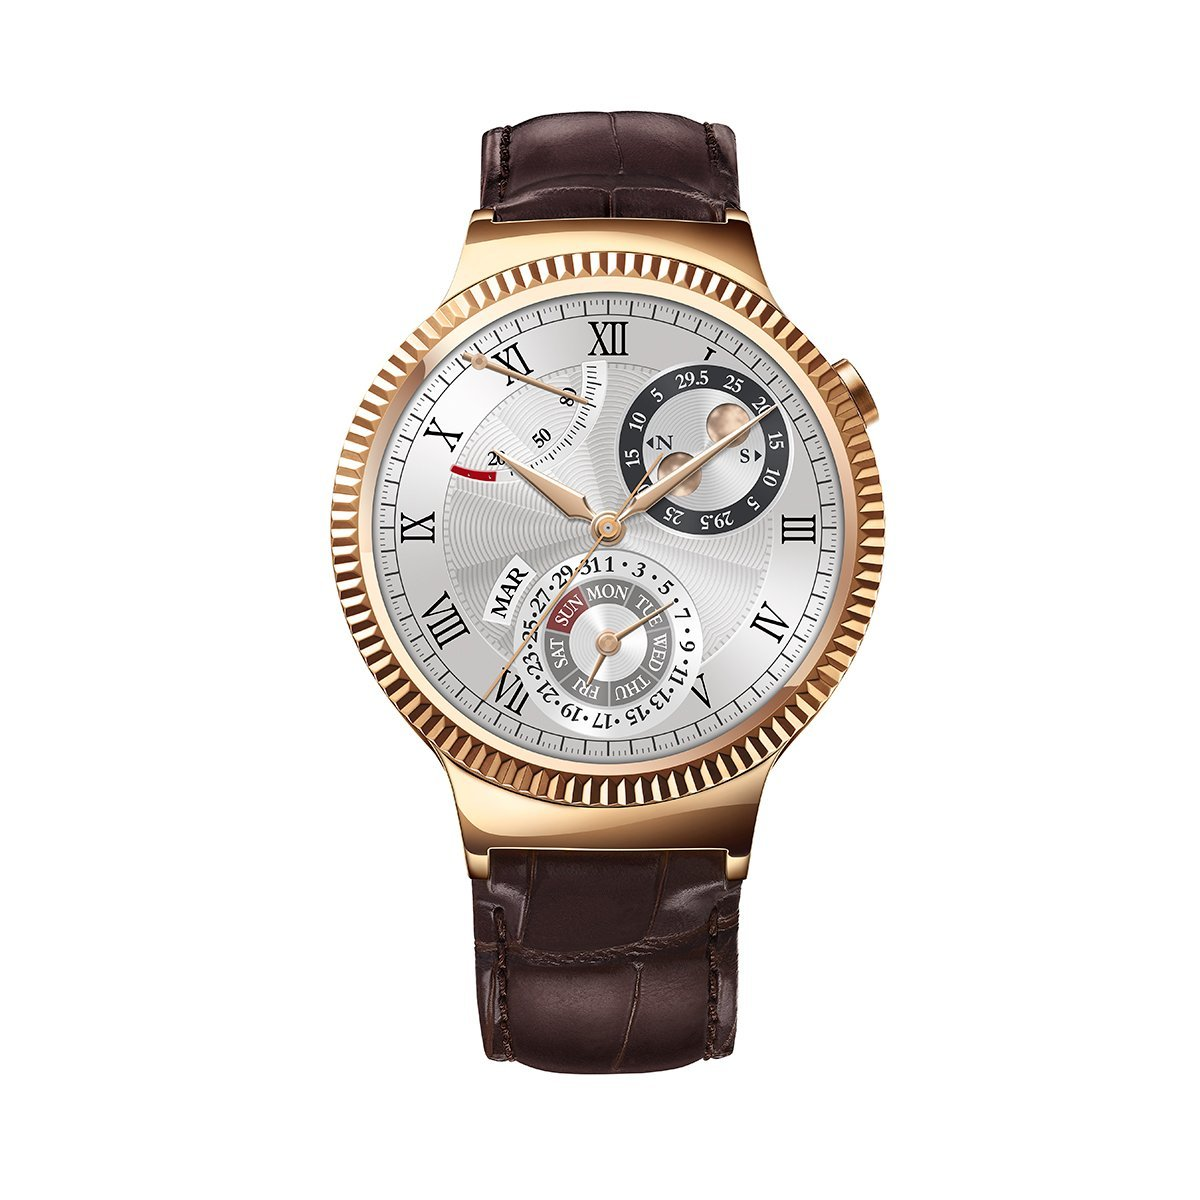 Huawei Watch Rose Gold Plated Stainless Steel with Brown Suture Leather Strap (U.S. Warranty) by Huawei